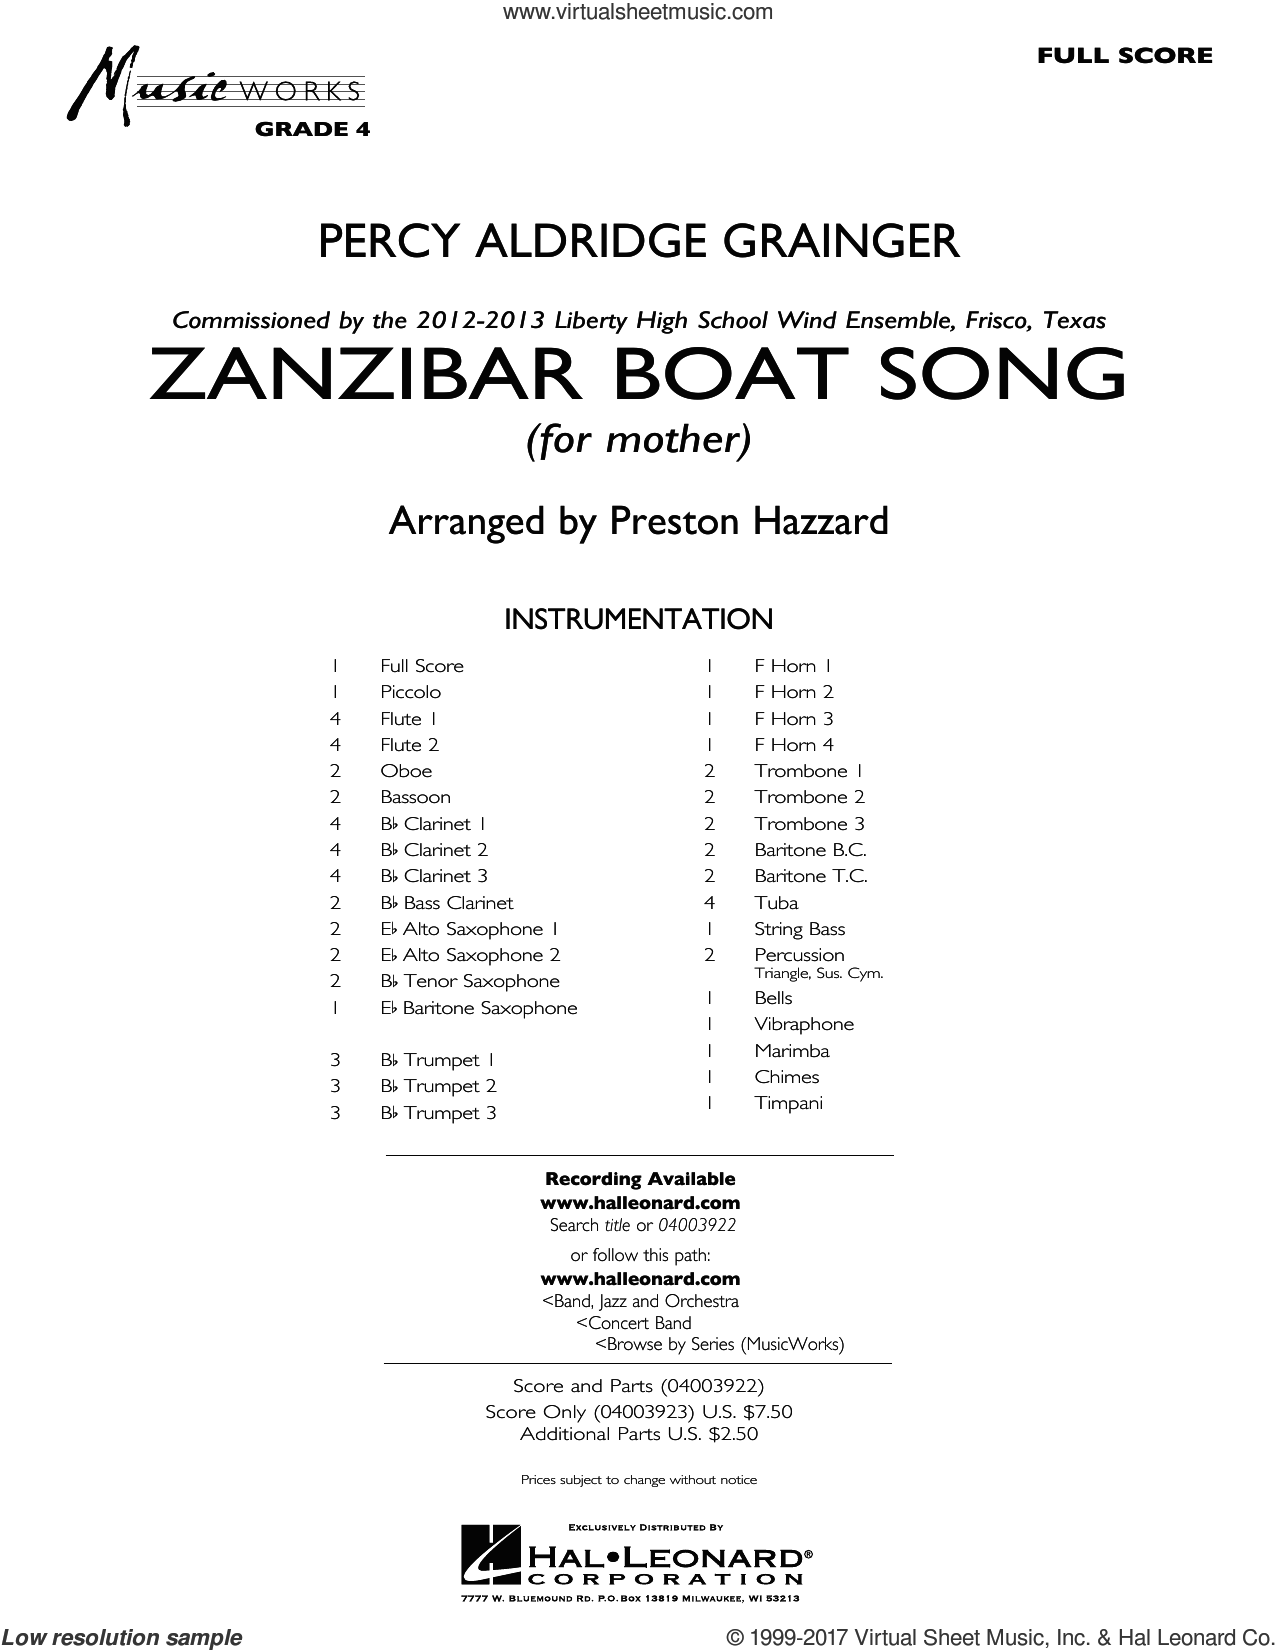 Zanzibar Boat Song (COMPLETE) sheet music for concert band by Preston Hazzard and Percy Aldridge Grainger, classical score, intermediate